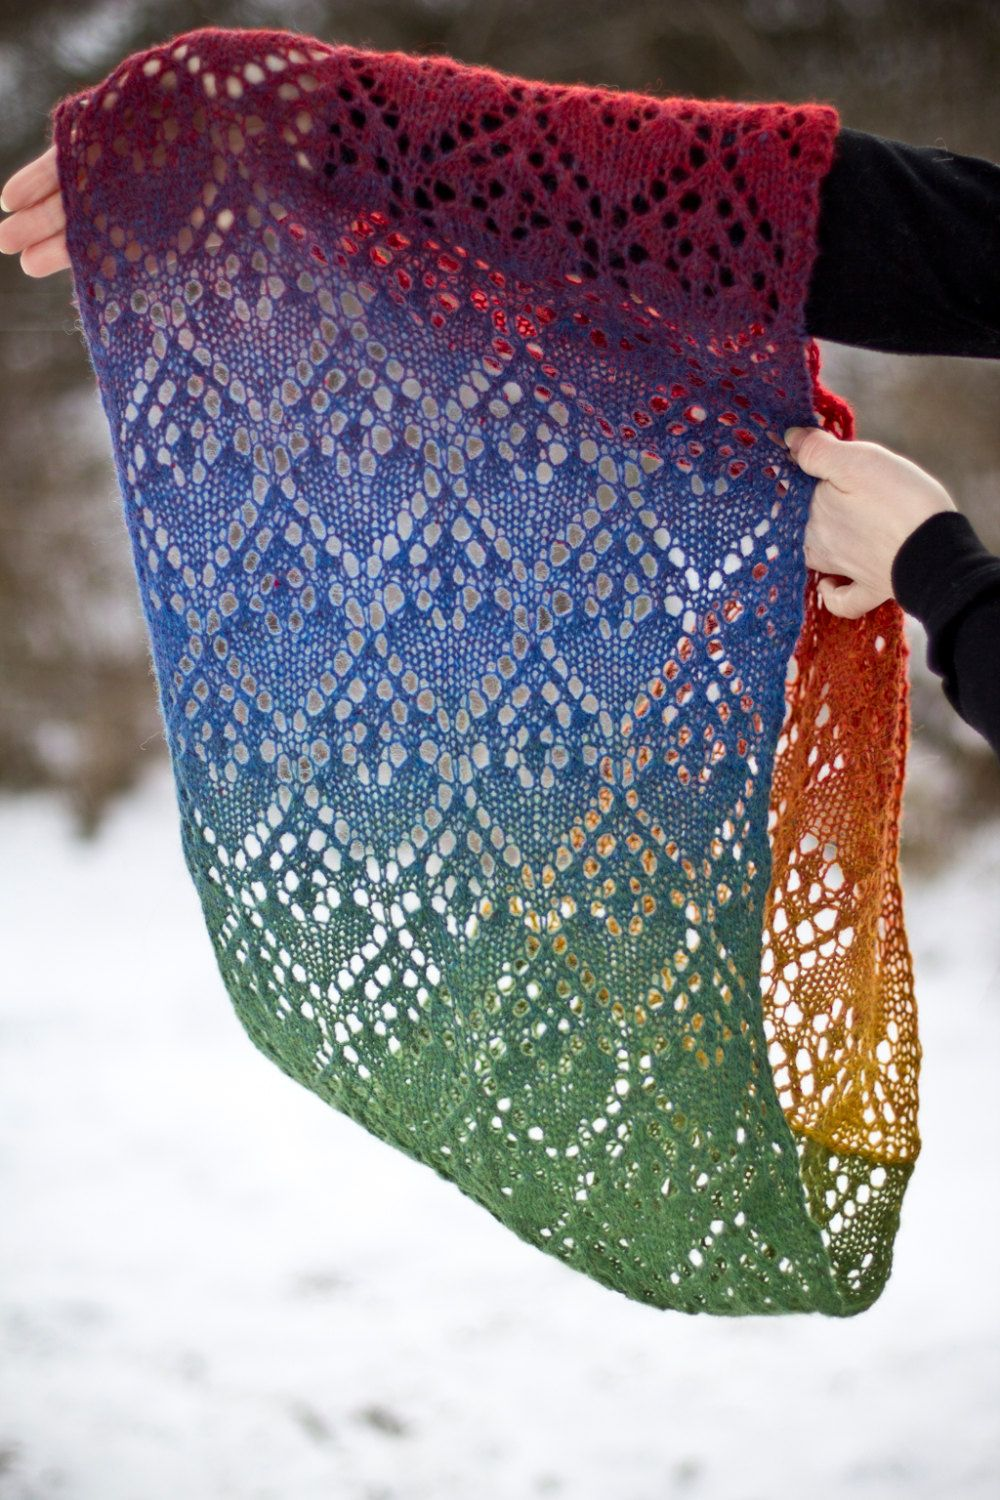 Knitting pattern for rainbow heart lace shawl heartfelt is a knitting pattern for rainbow heart lace shawl heartfelt is a rectangular lace shawl that can bankloansurffo Choice Image